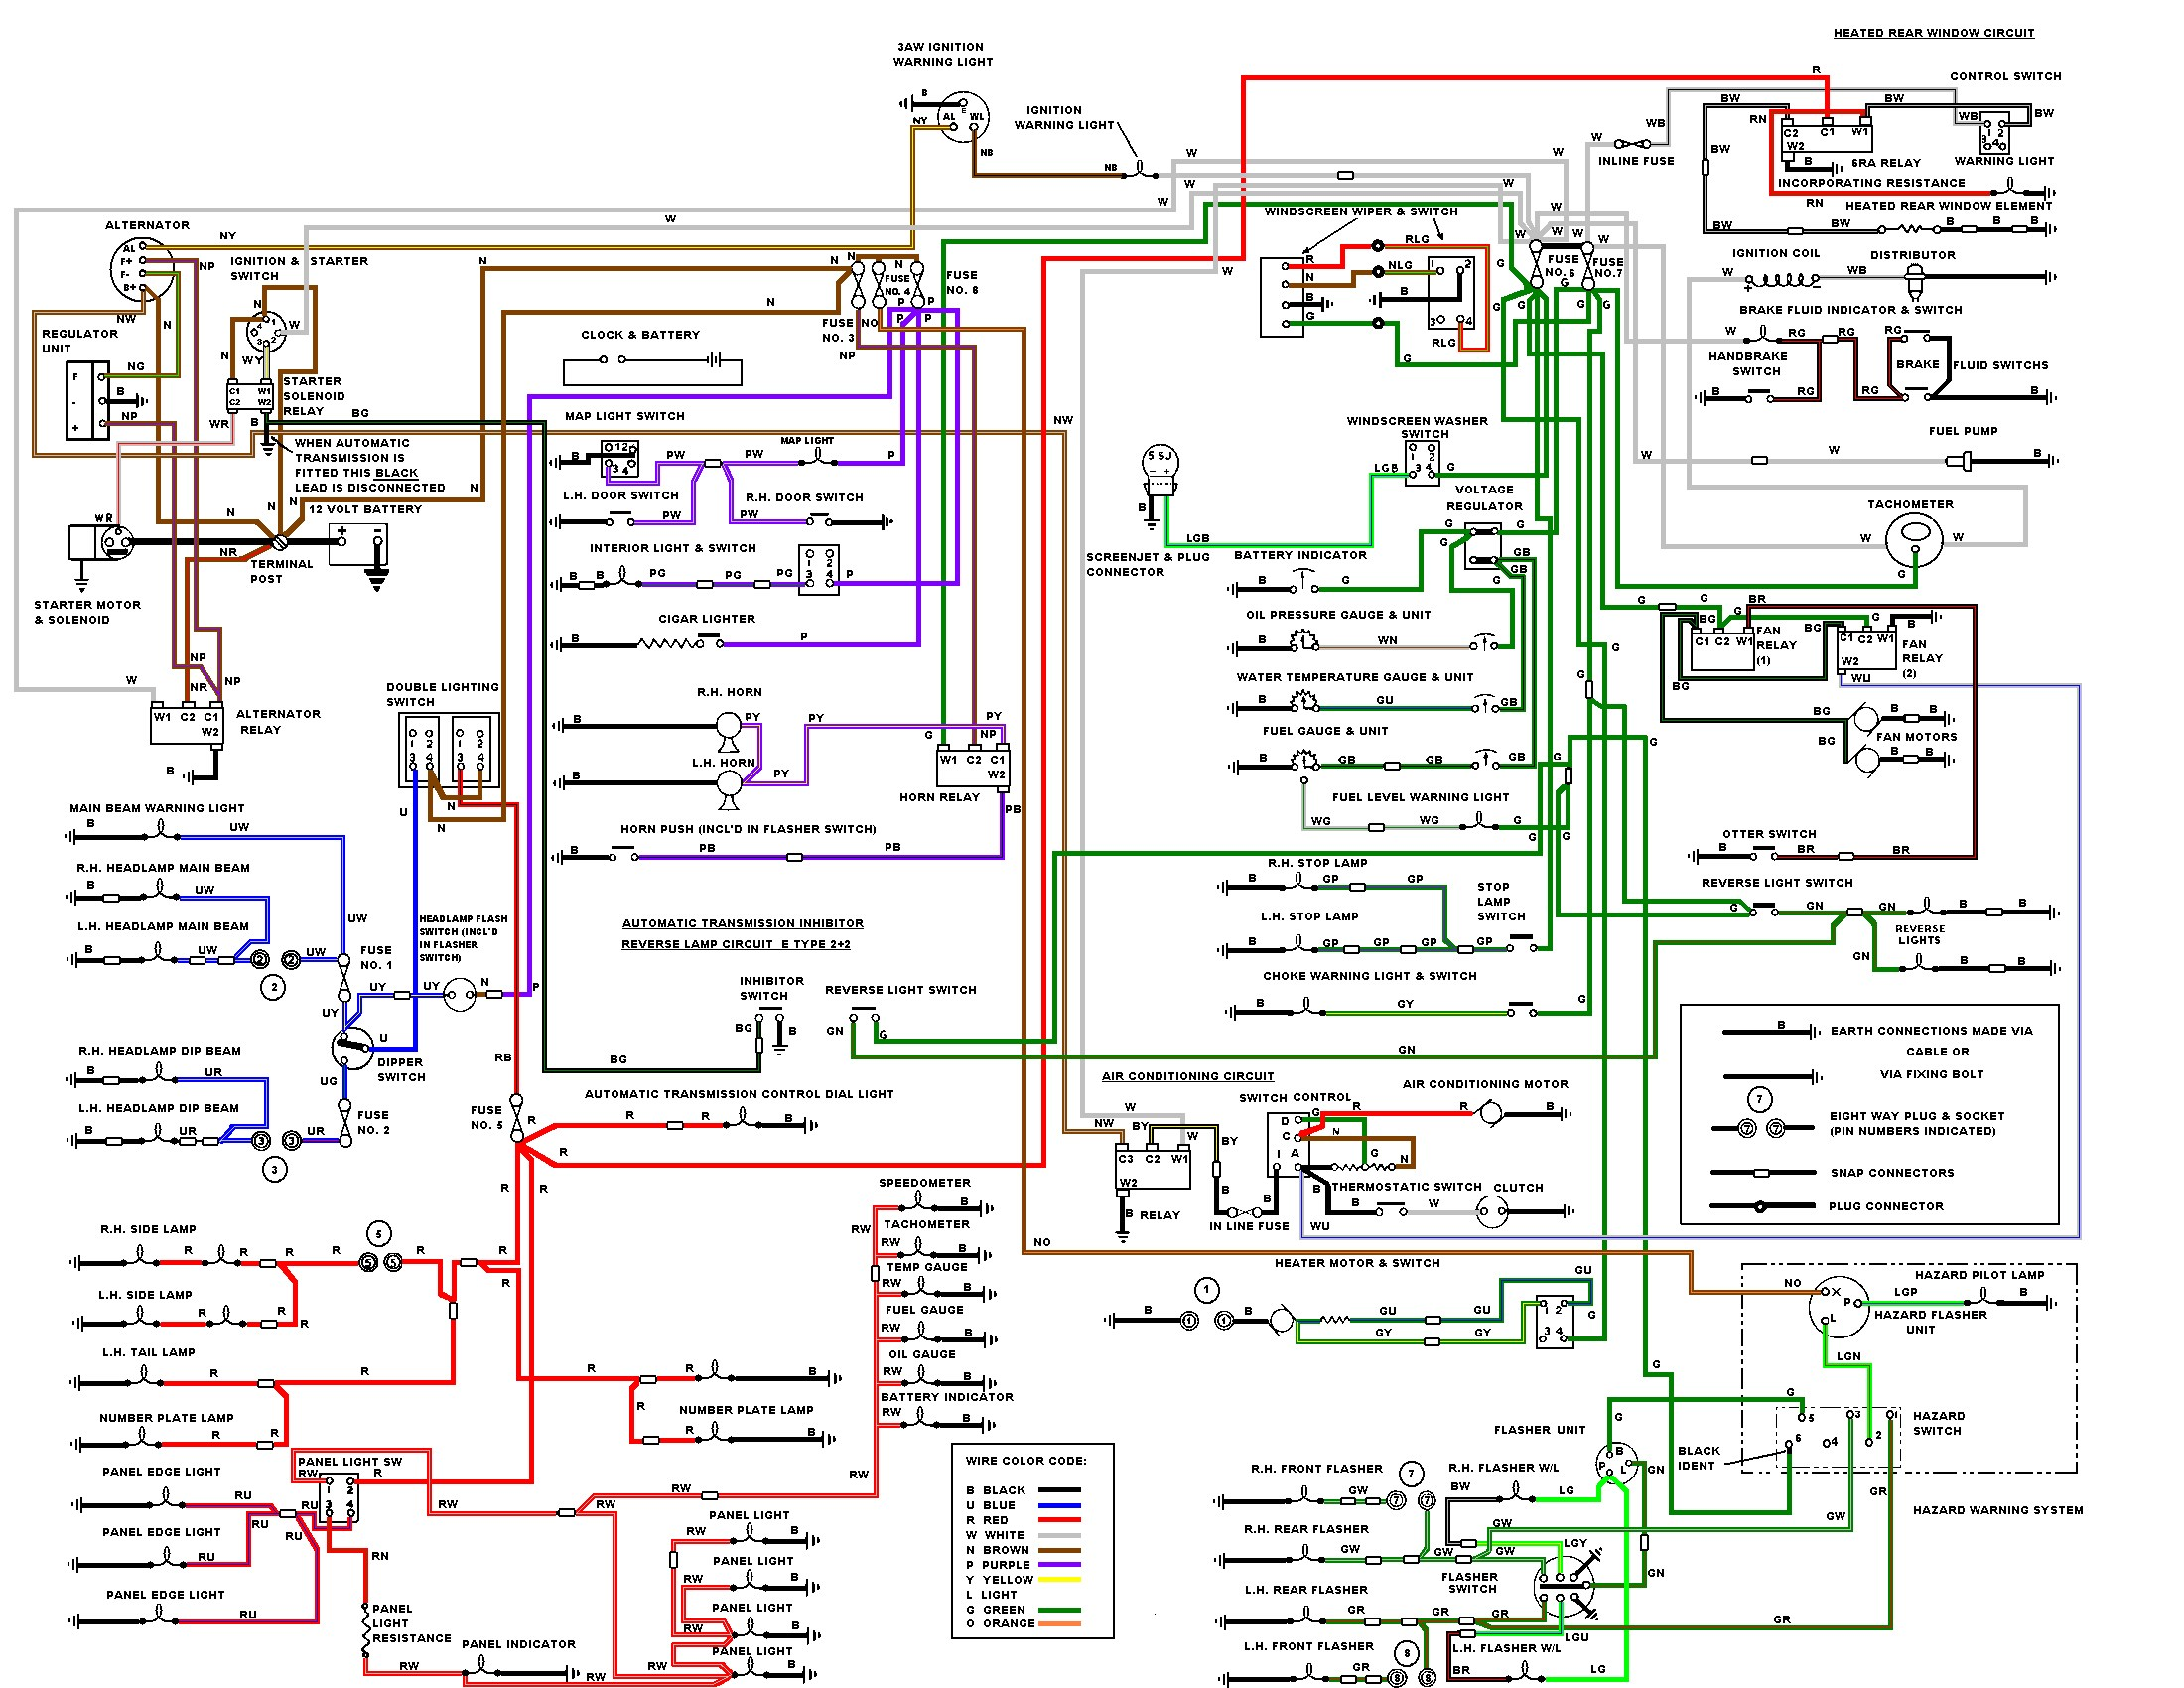 Wiring Diagram Types On Wiring Pdf Images Electrical Engine And